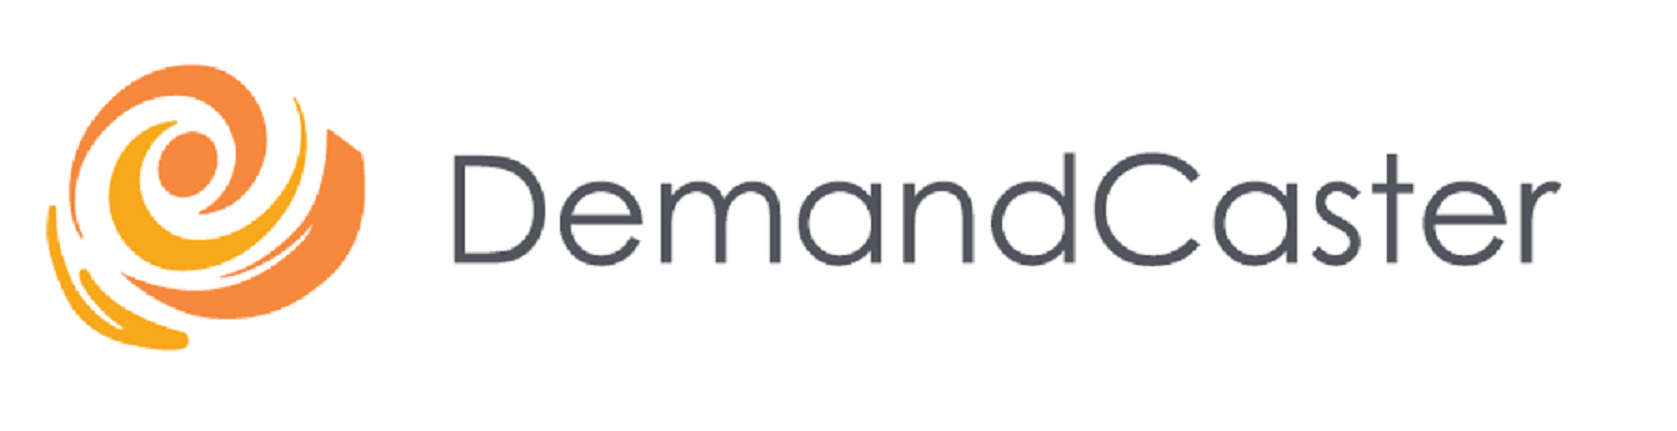 DemandCaster Supply Chain Planning - DemandCaster